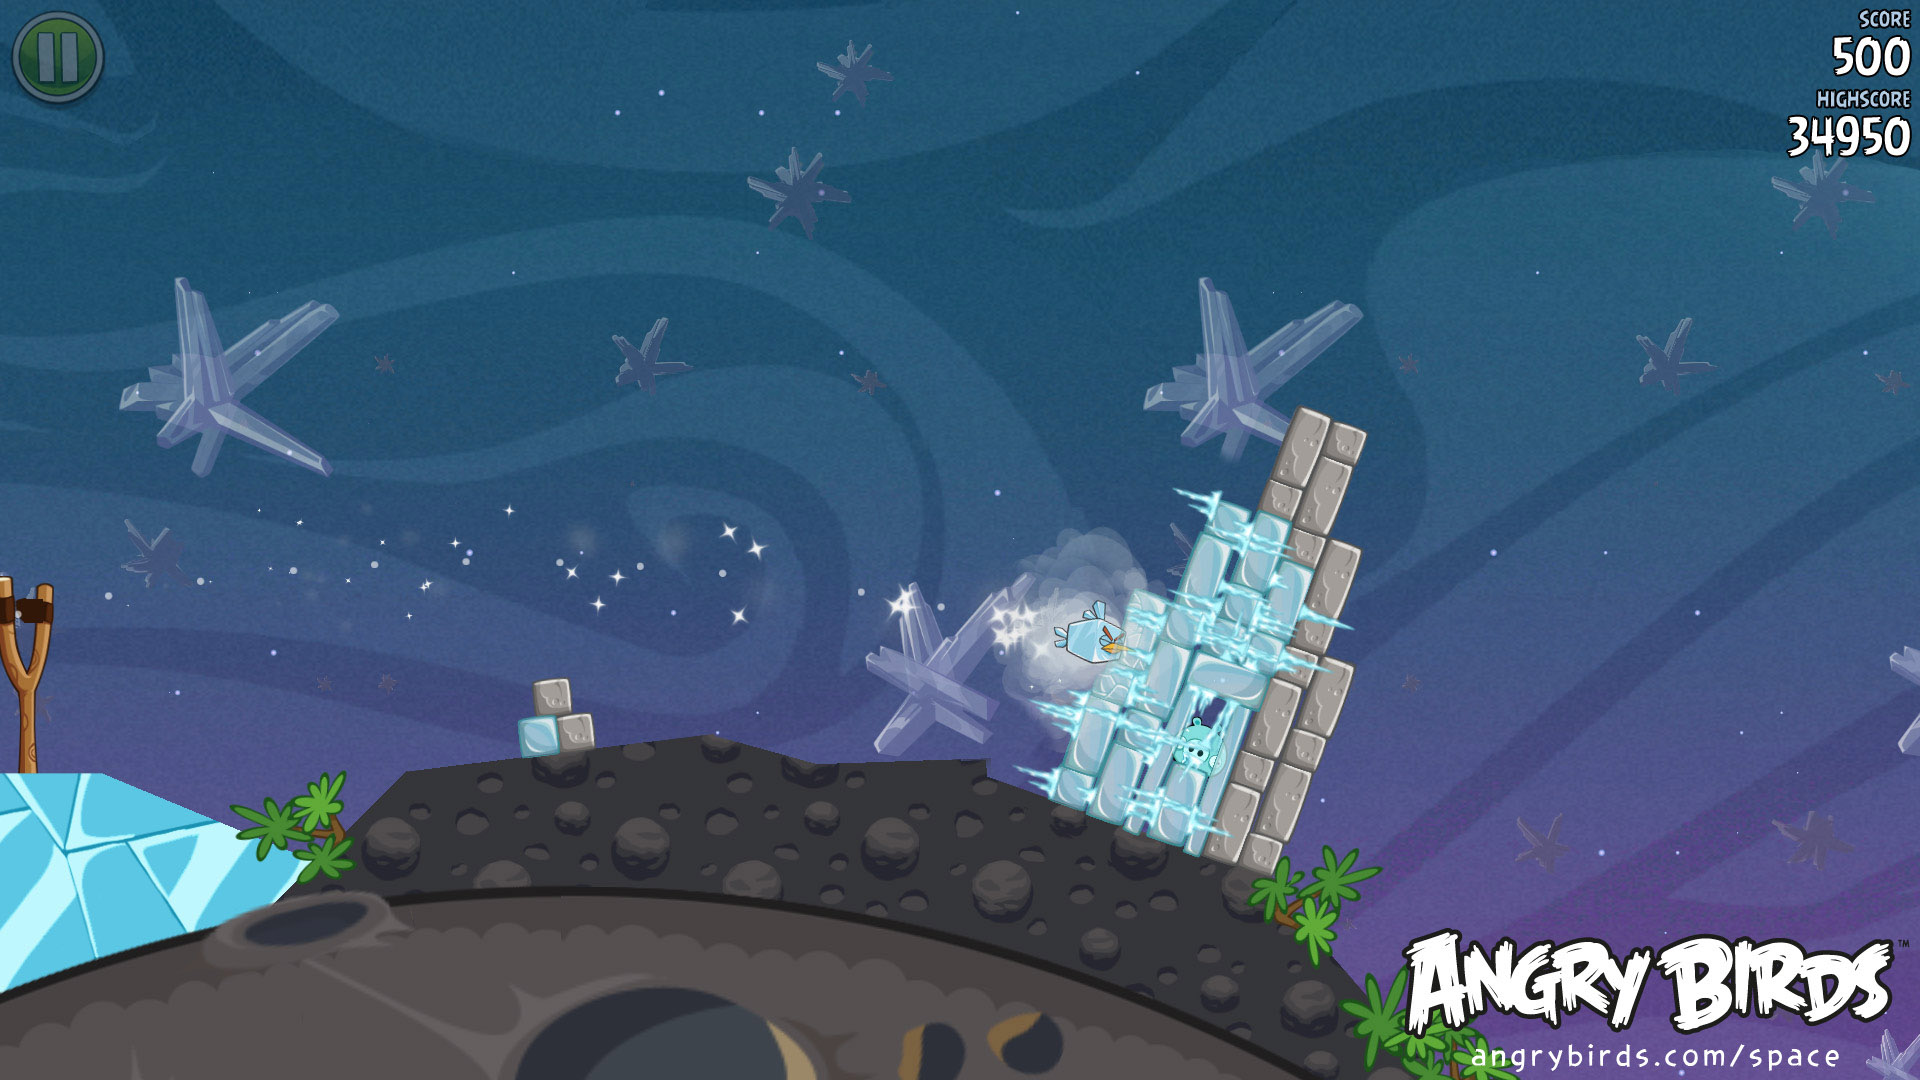 [Mi Subida] Angry Birds Space | Full | Serial |